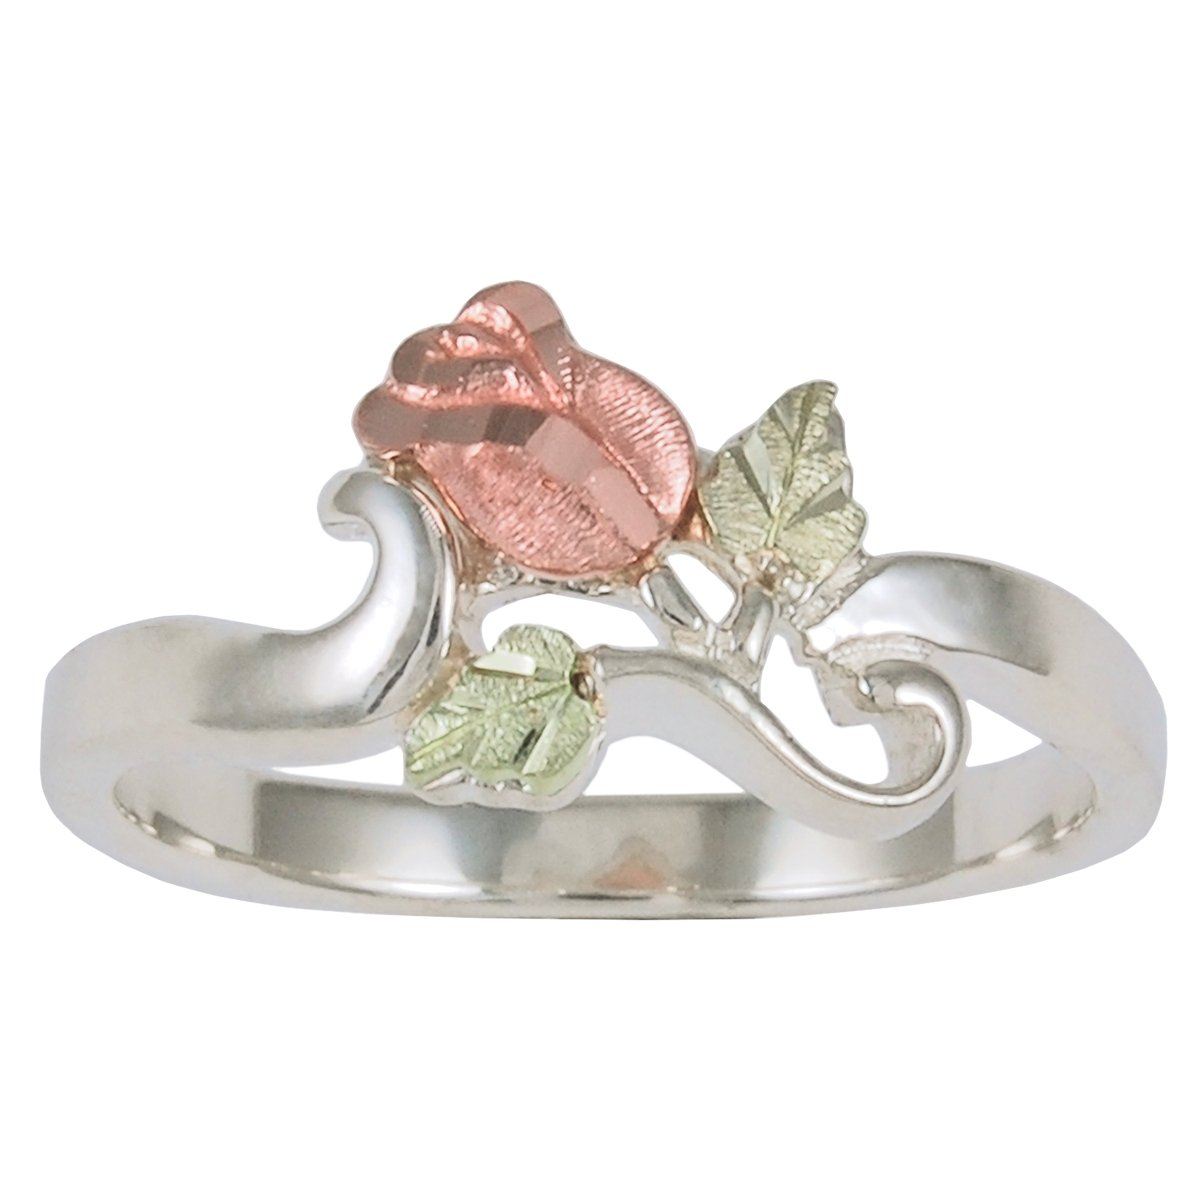 Petite Rose Ring, Sterling Silver, 12k Green and Rose Gold Black Hills Gold Motif, Size 7 by Black Hills Gold Jewelry